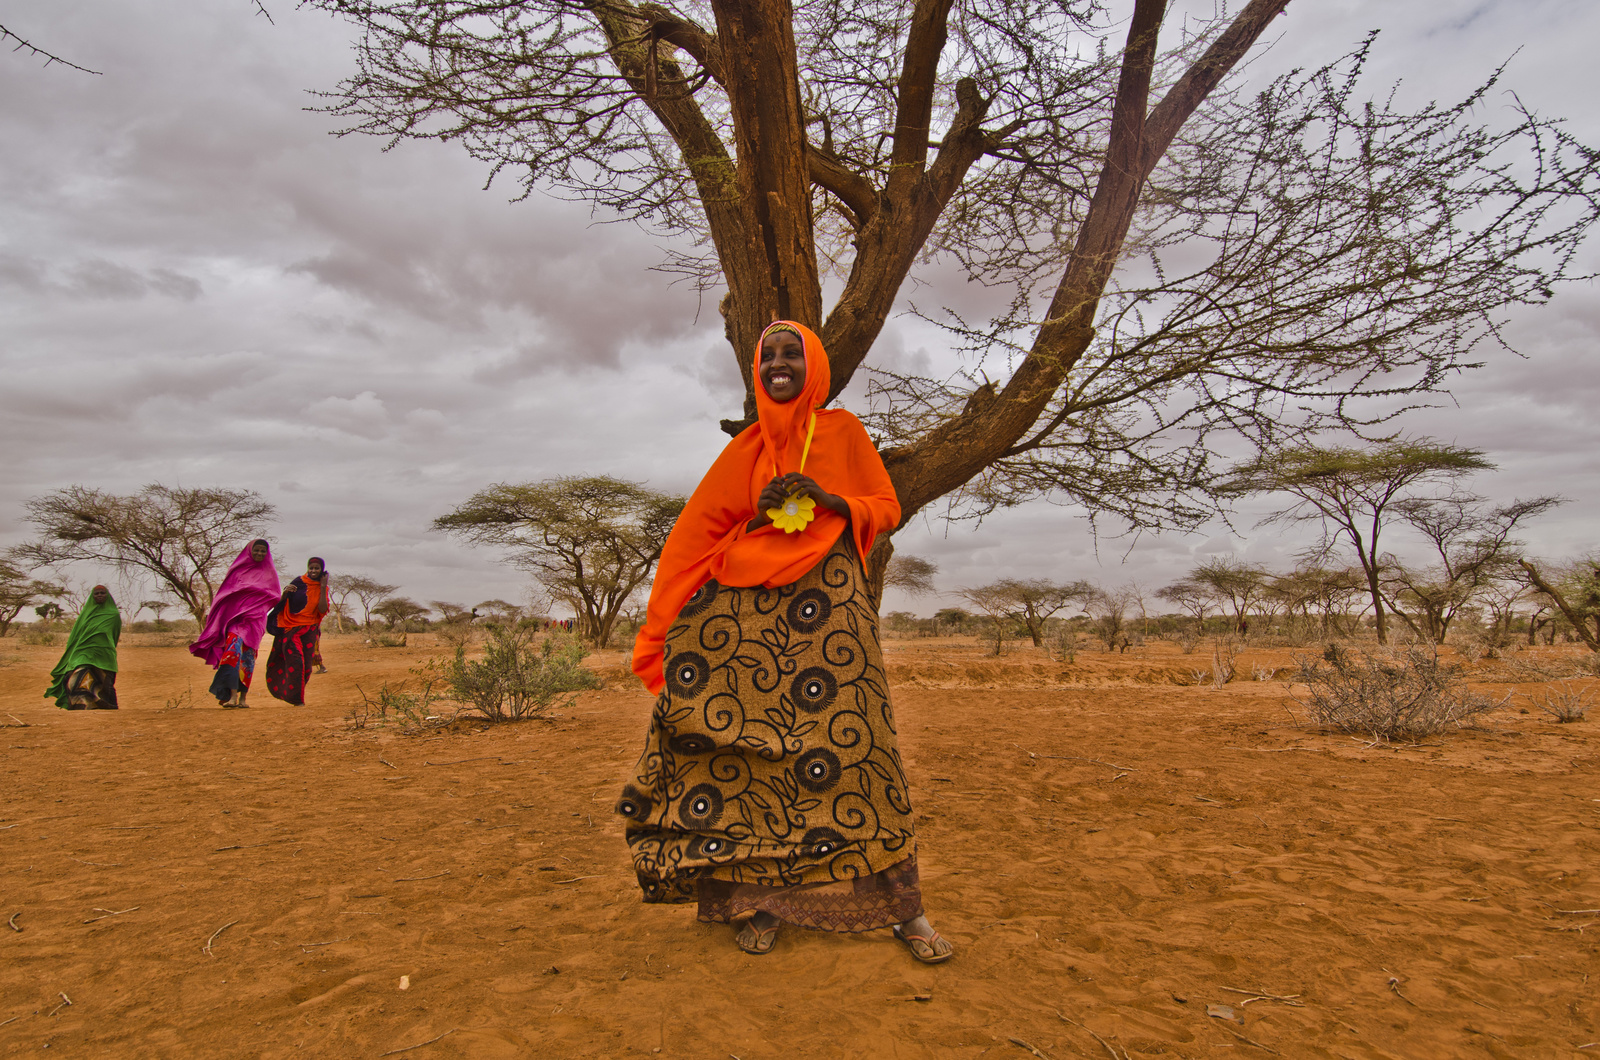 Displaced Somali beneficiary wears Little Sun around her neck and looks smilingly into the horizon.